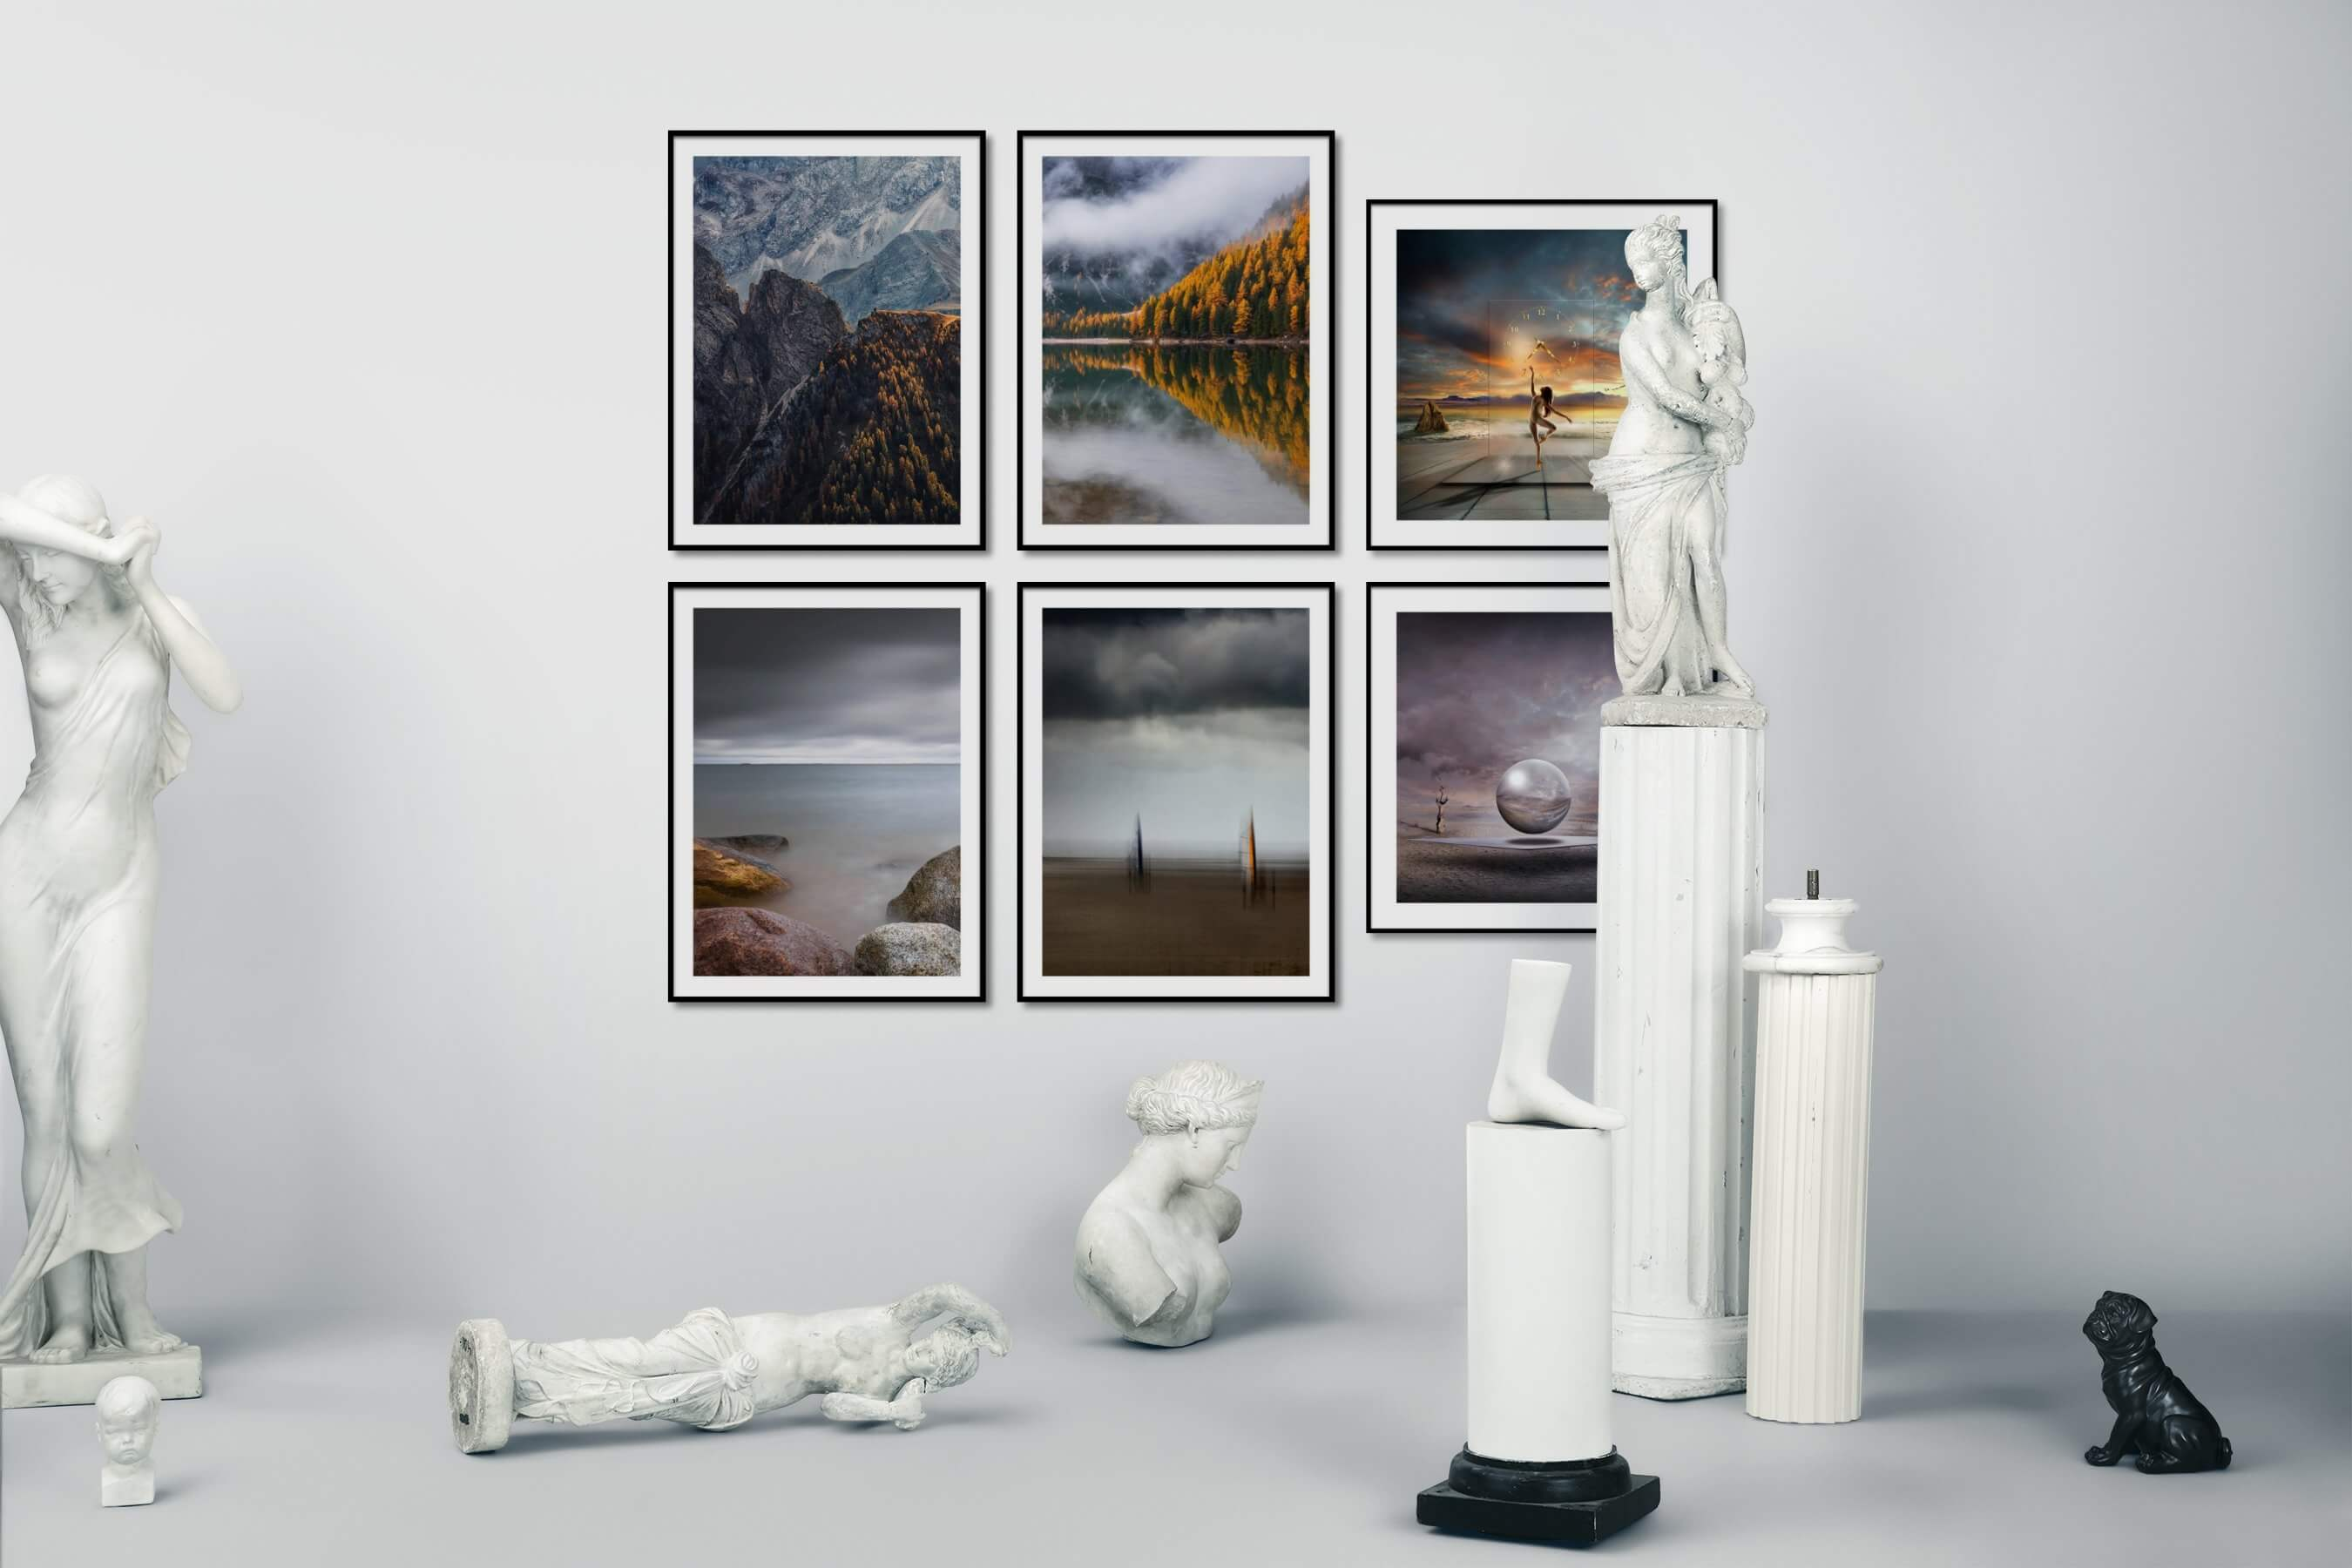 Gallery wall idea with six framed pictures arranged on a wall depicting Nature, Beach & Water, Mindfulness, and Artsy